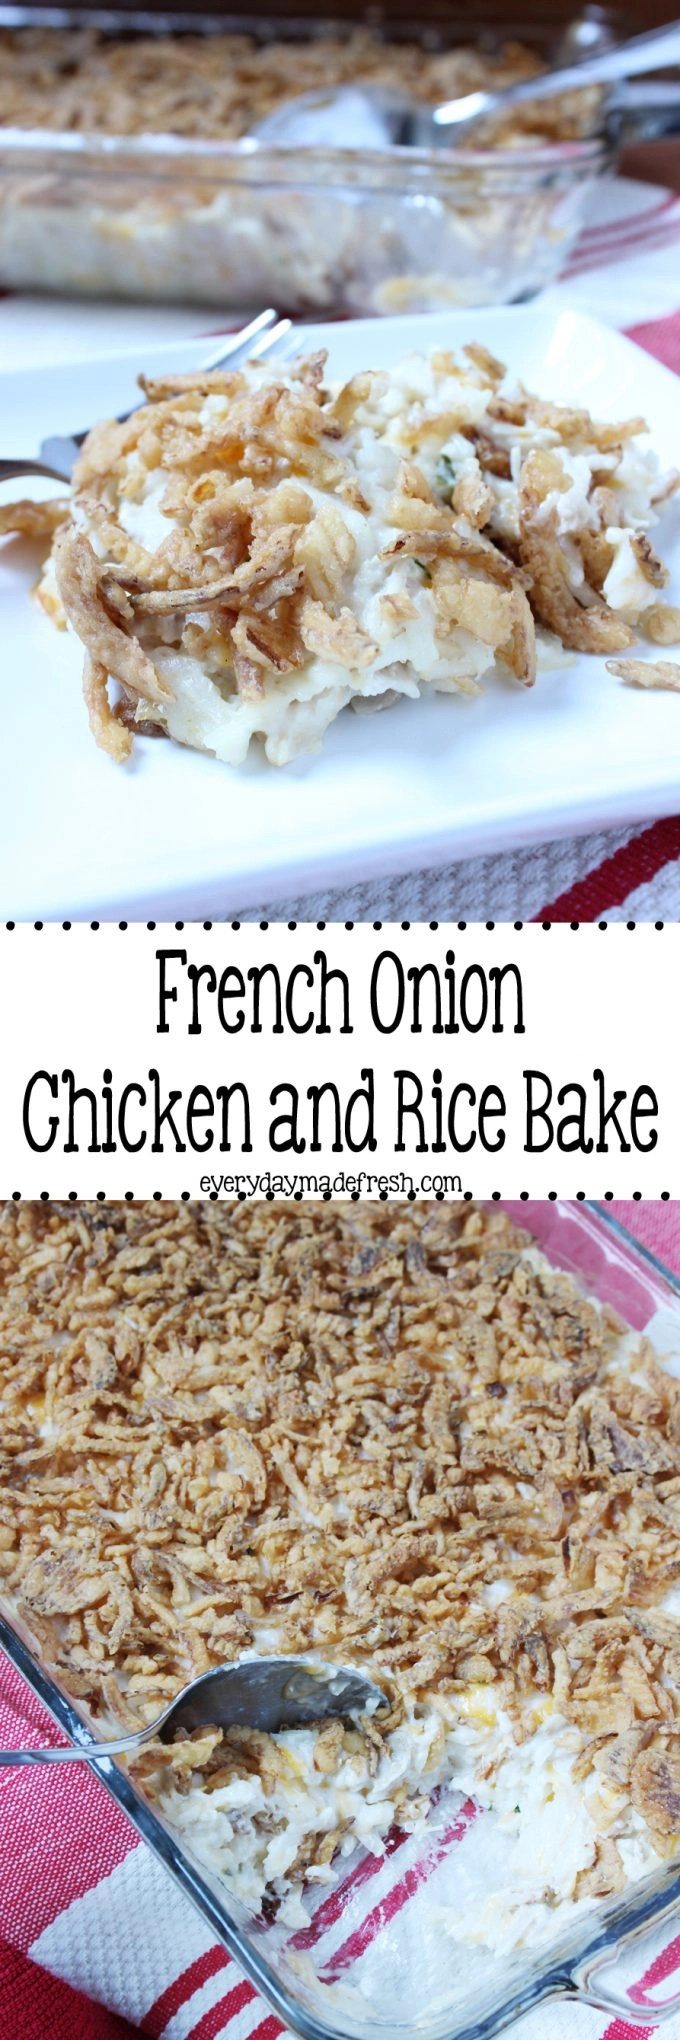 French Onion Chicken and Rice Bake is made with simple shortcuts to have dinner on the table in no time. #ad #BensBeginners #UncleBensPromo | EverydayMadeFresh.com